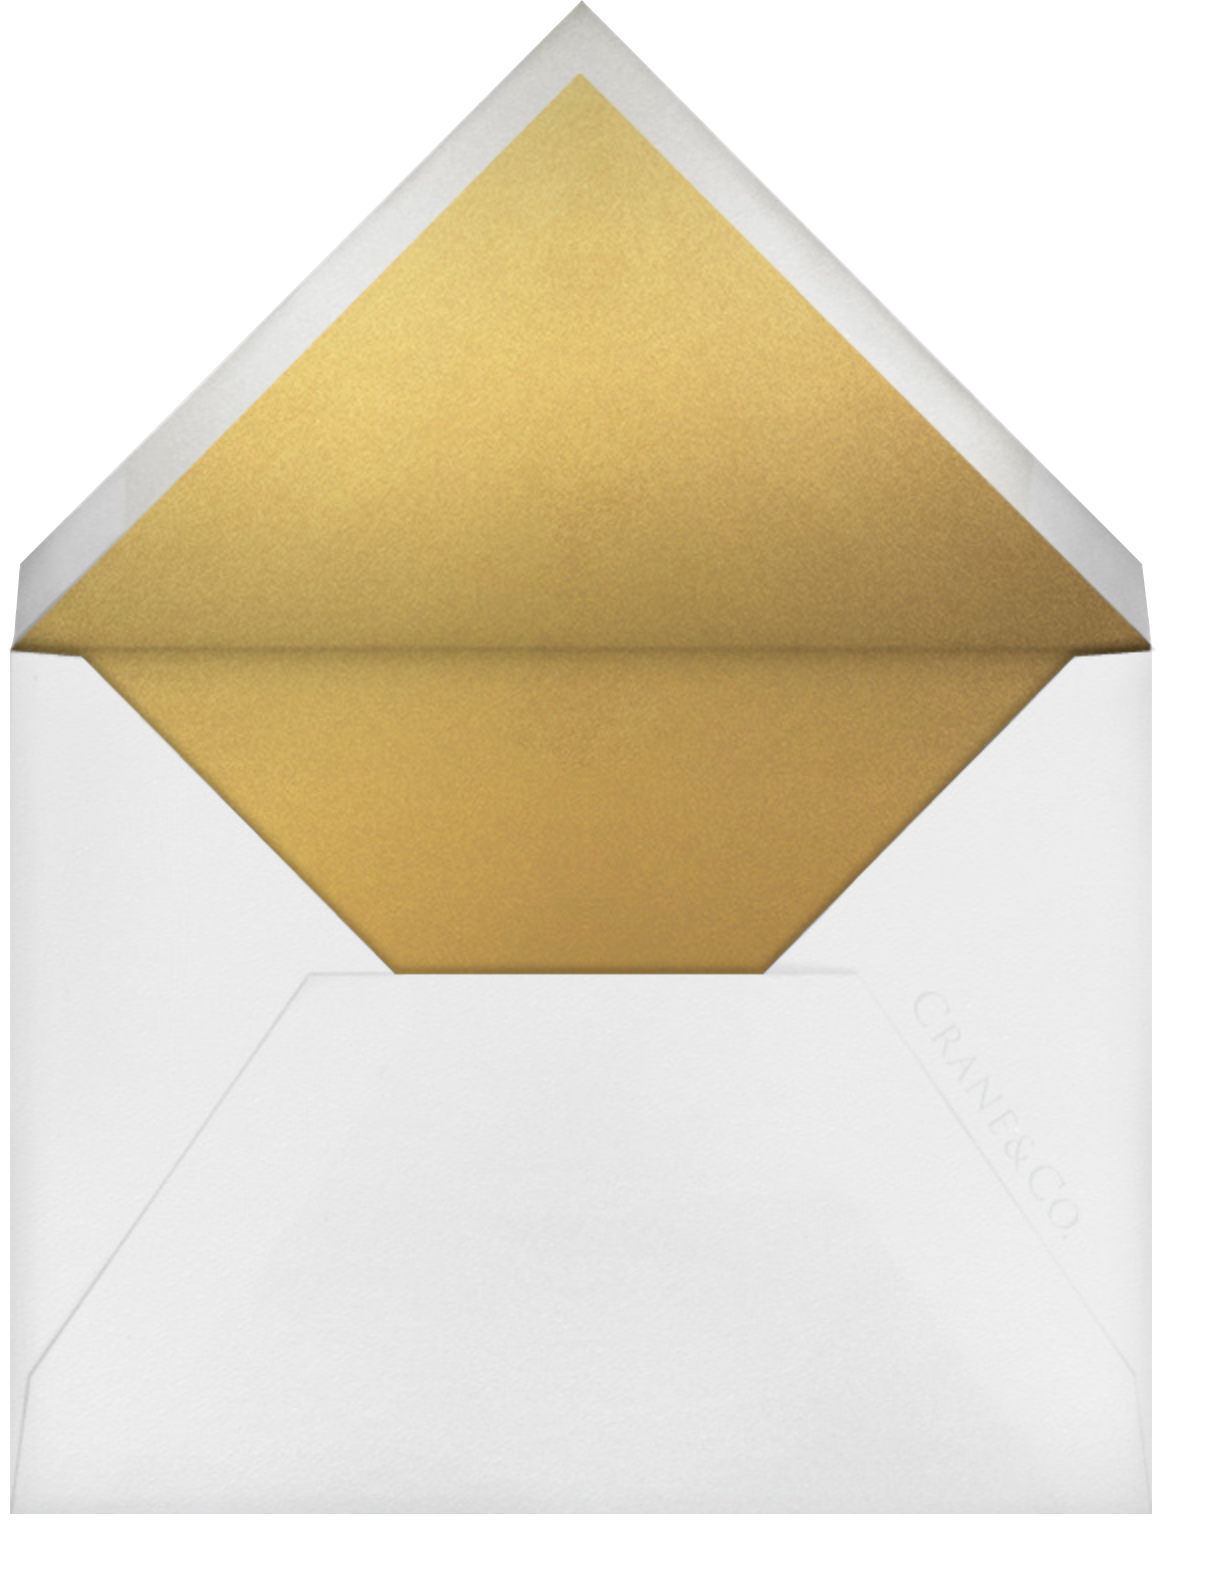 Moiré I (Thank You) - Medium Gold - Kelly Wearstler - Personalized stationery - envelope back